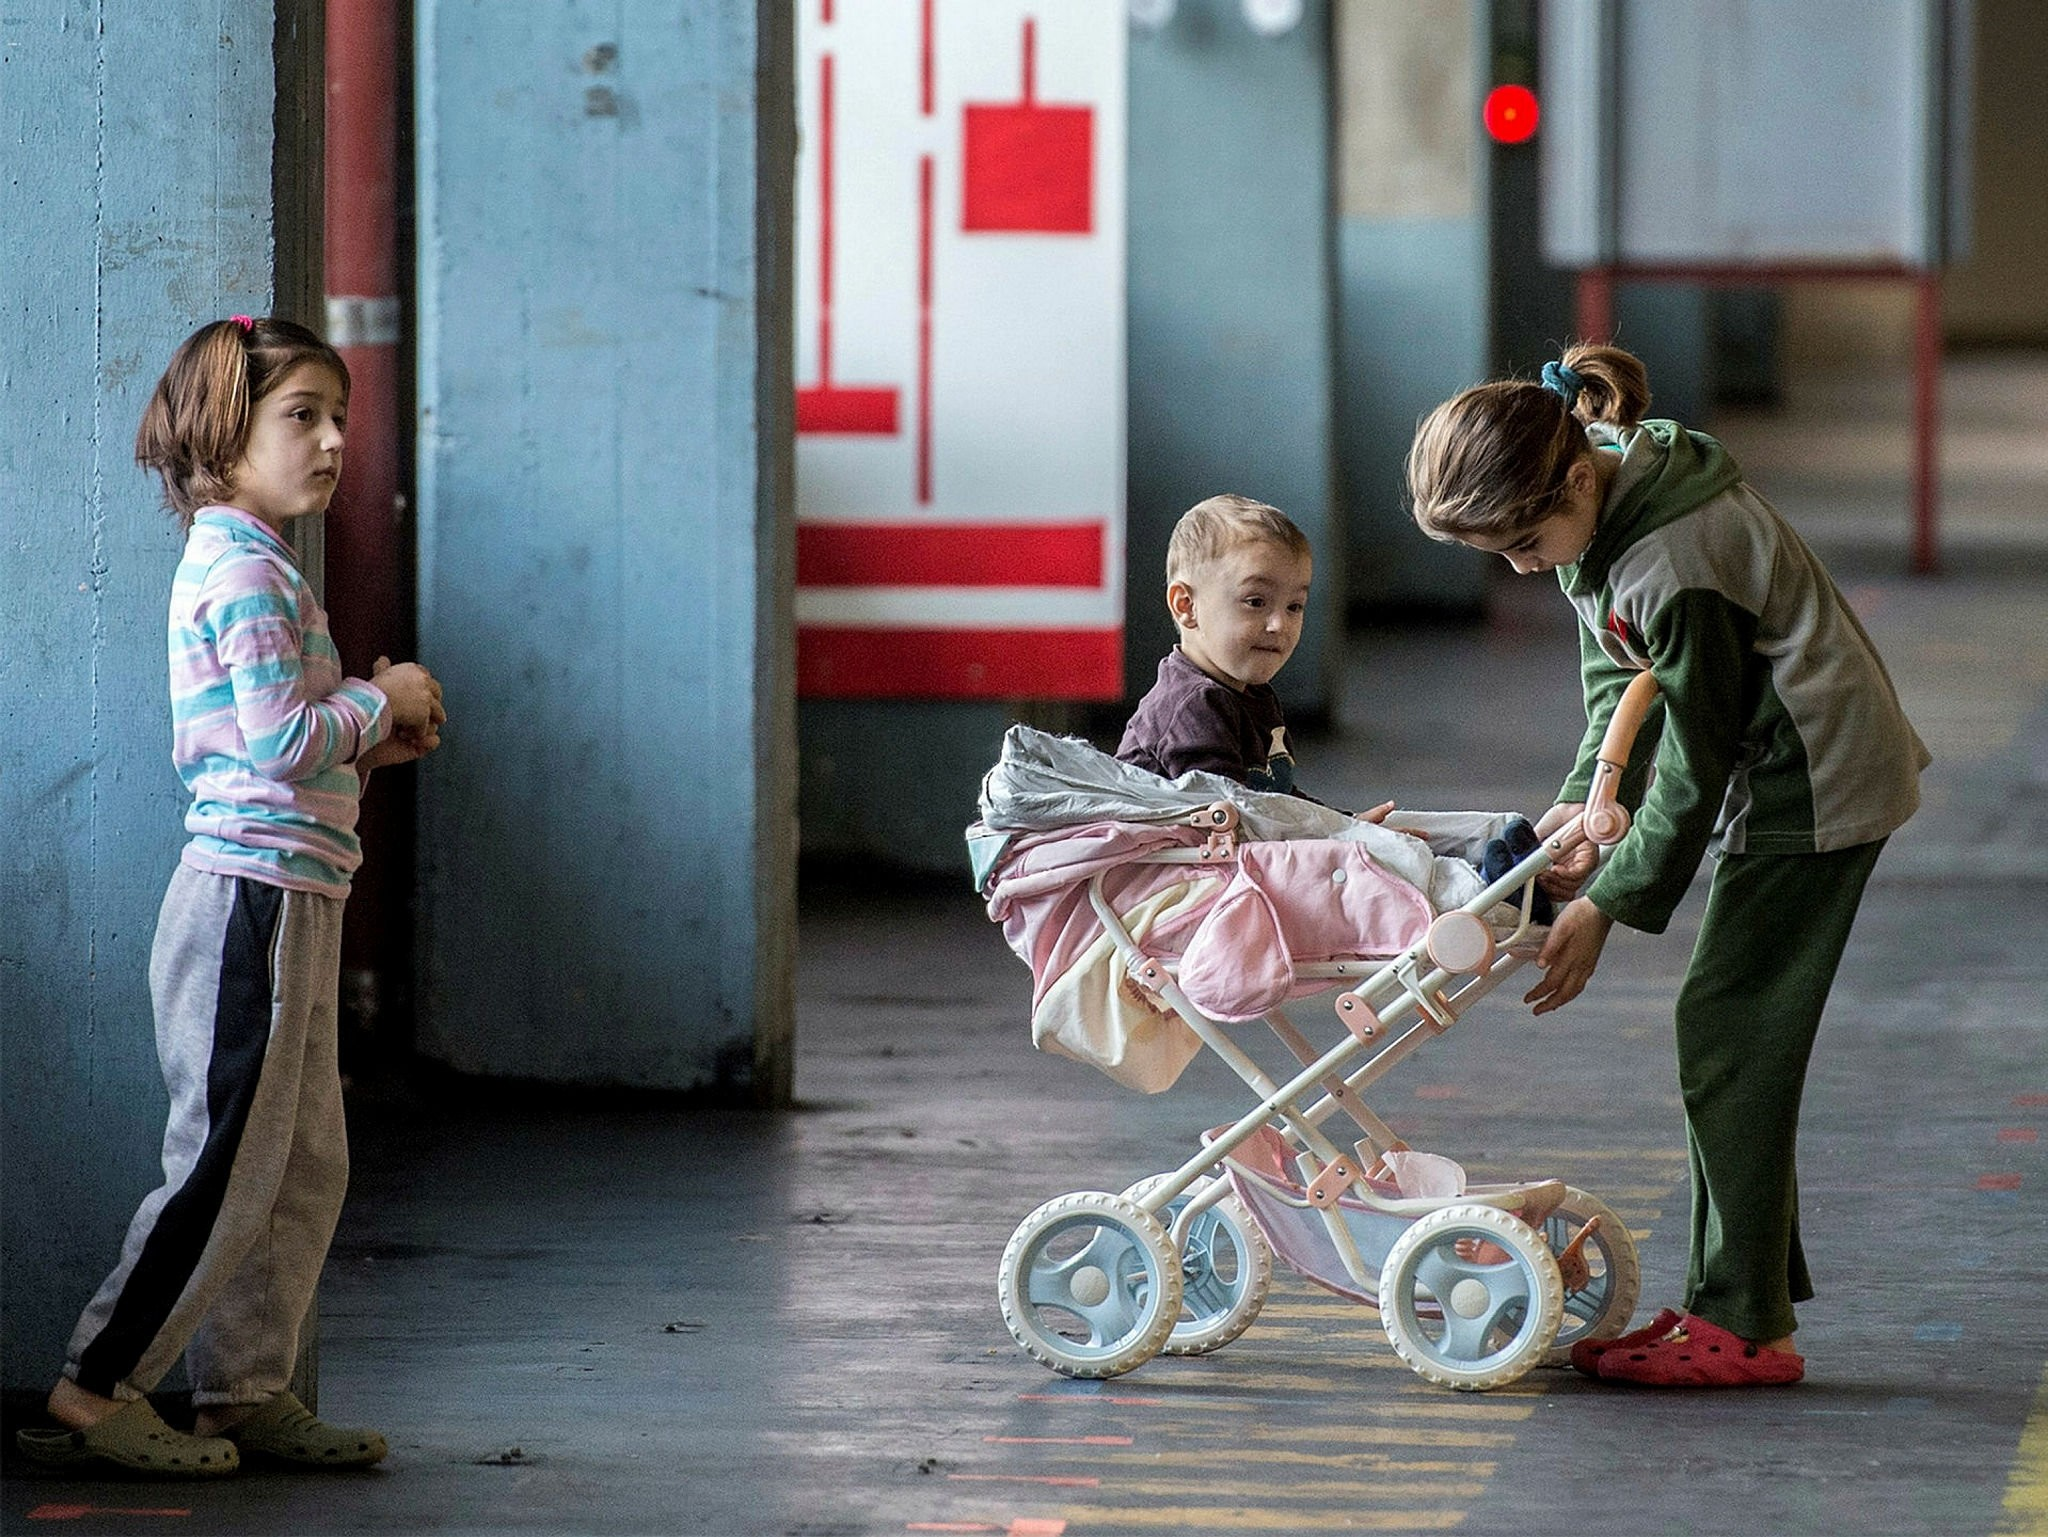 Children play in a building converted into refugee accommodations in Frankfurt, Germany. (FILE Photo)